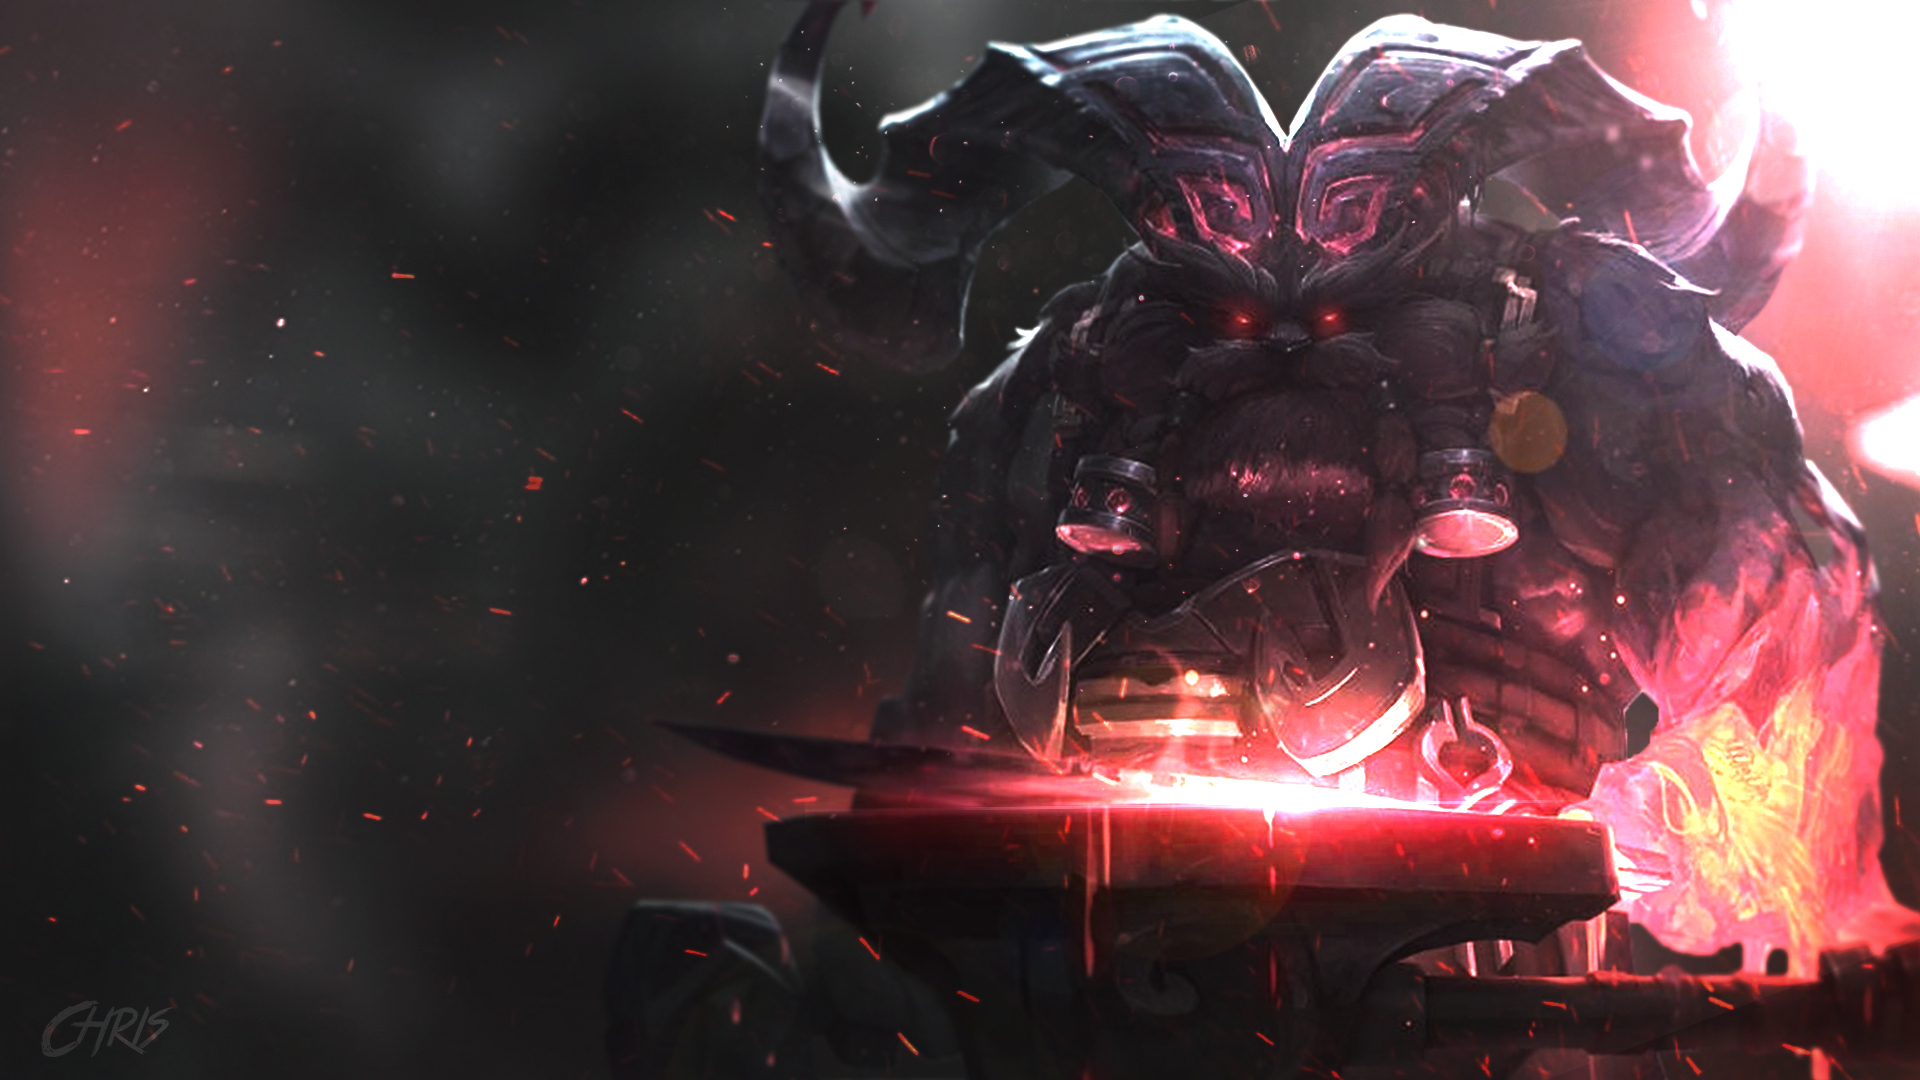 Lolwallpapers High Definition Desktop League Of Legends Wallpapers